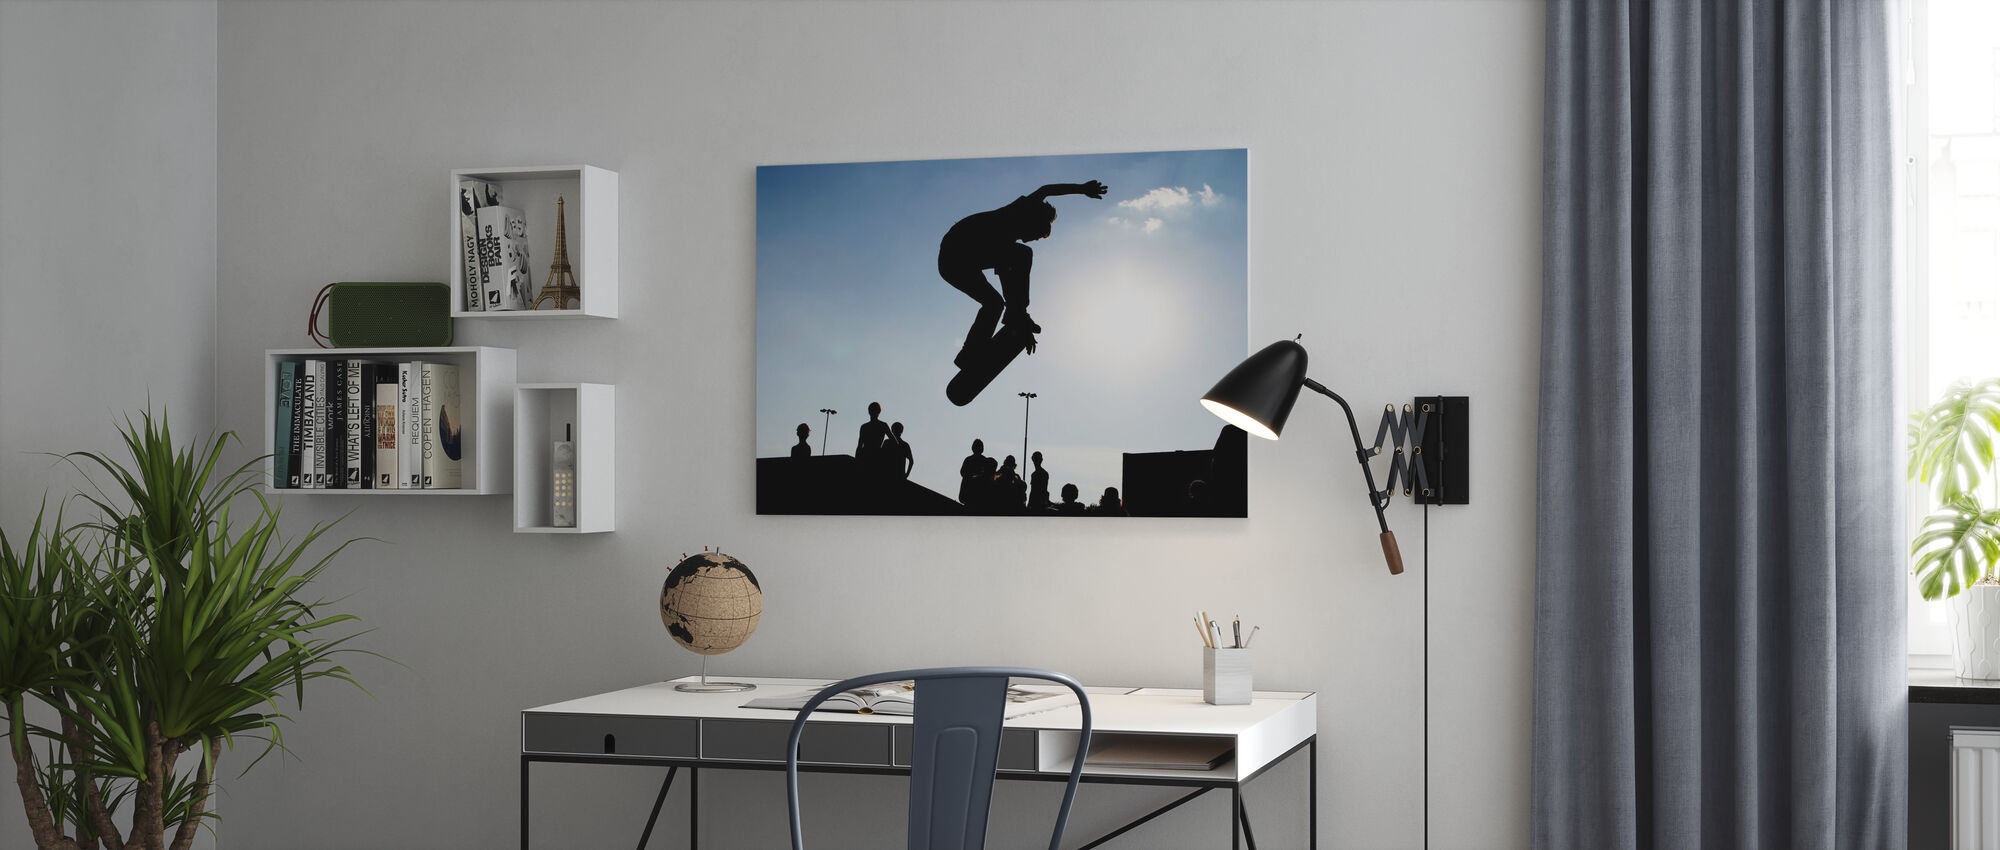 Skateboard Jump - Canvas print - Office